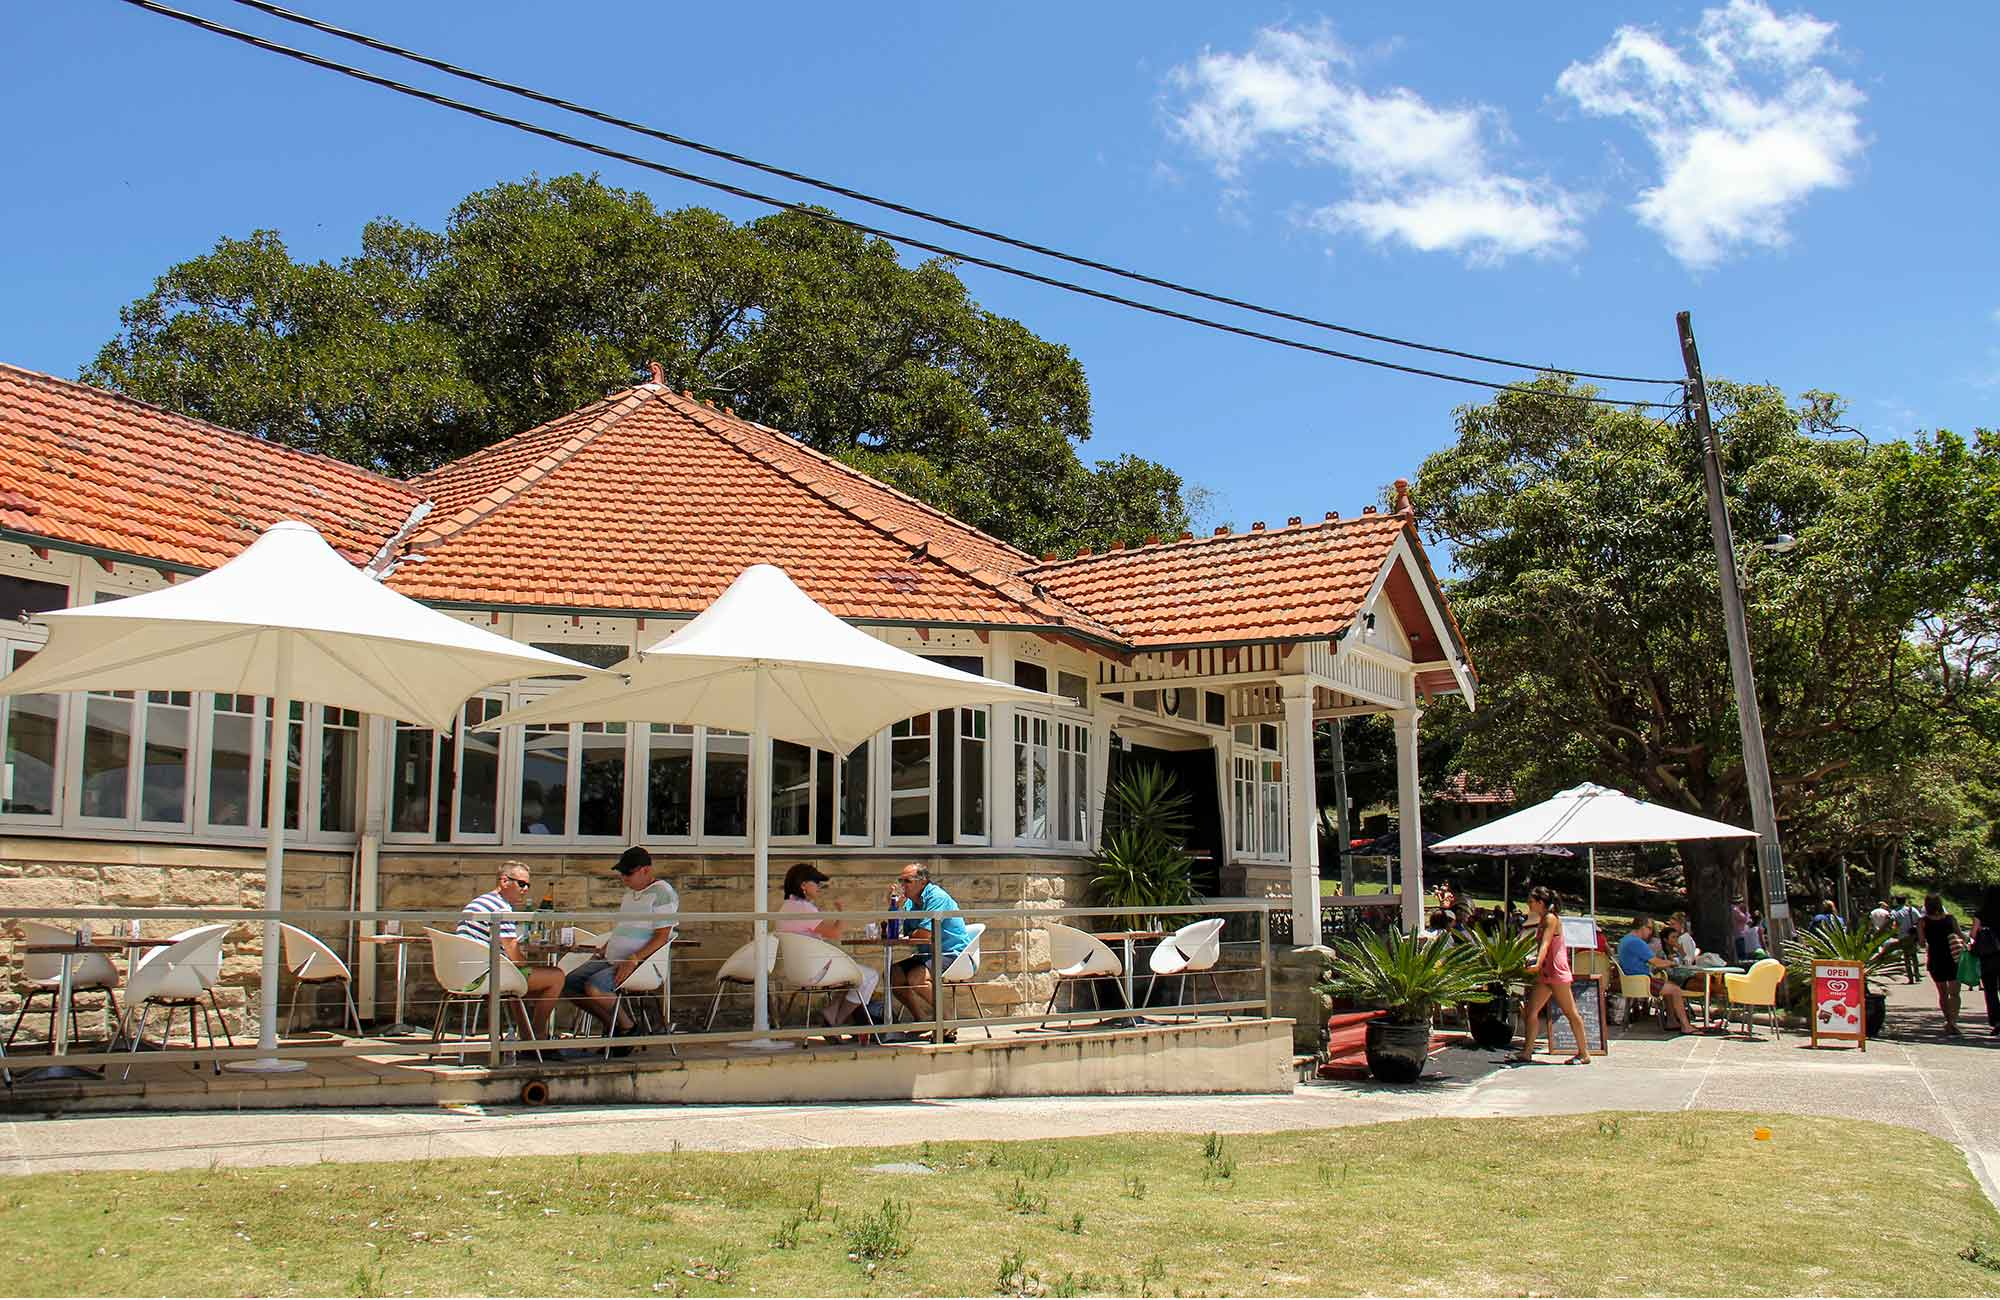 Nielsen Park Cafe and Halbert Pavilion, Sydney Harbour National Park. Photo: John Yurasek